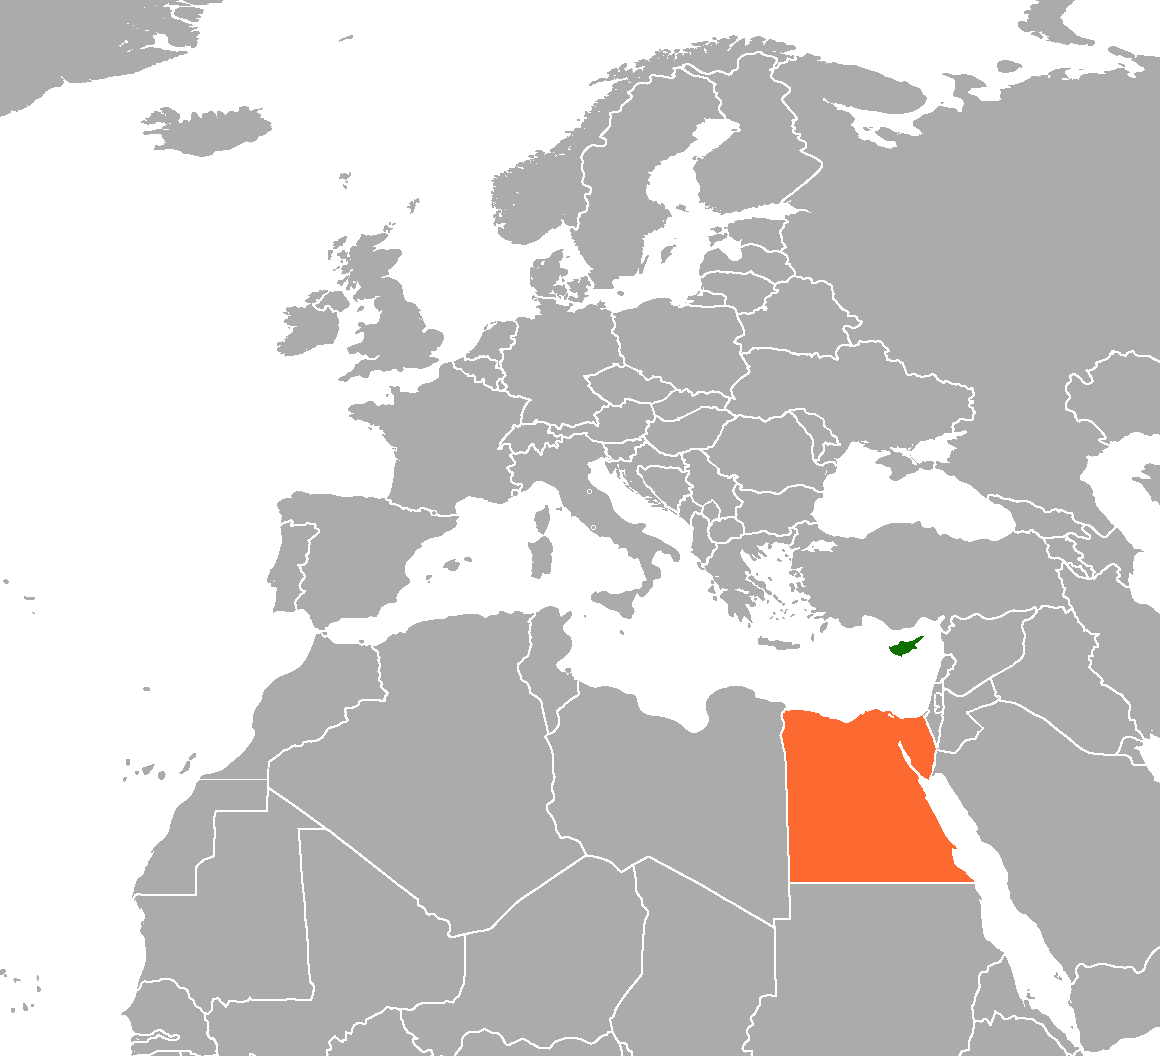 Bilateral relations between Cyprus and Egypt